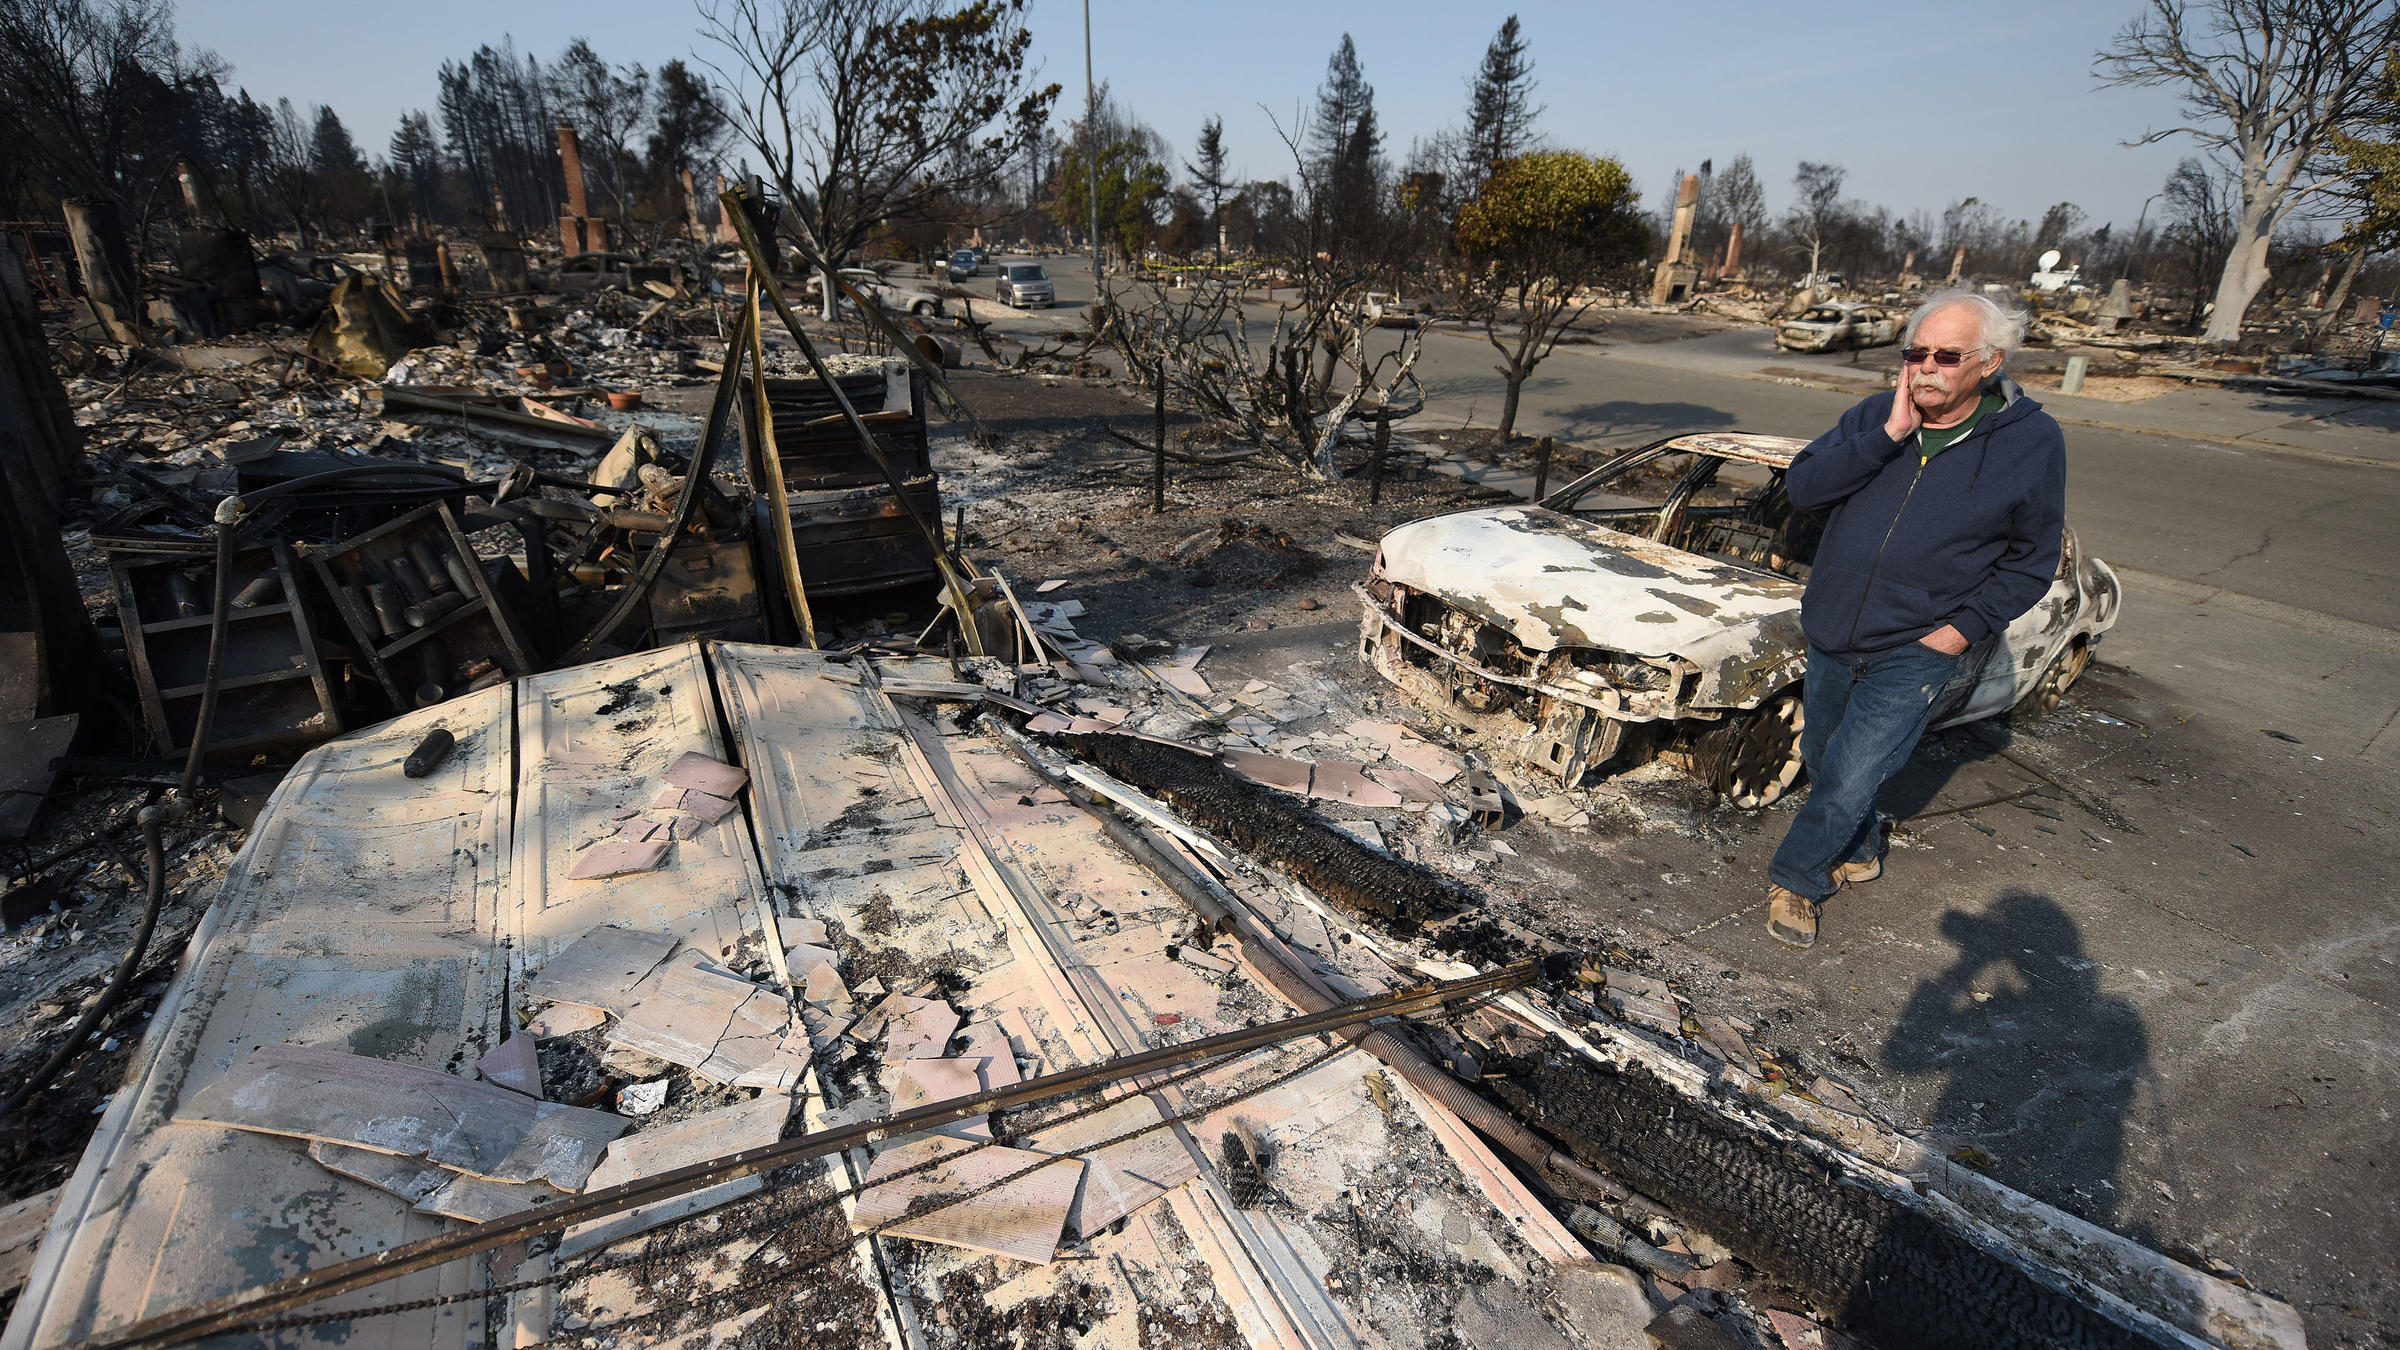 California wildfires: Winds fan 'catastrophic' blazes